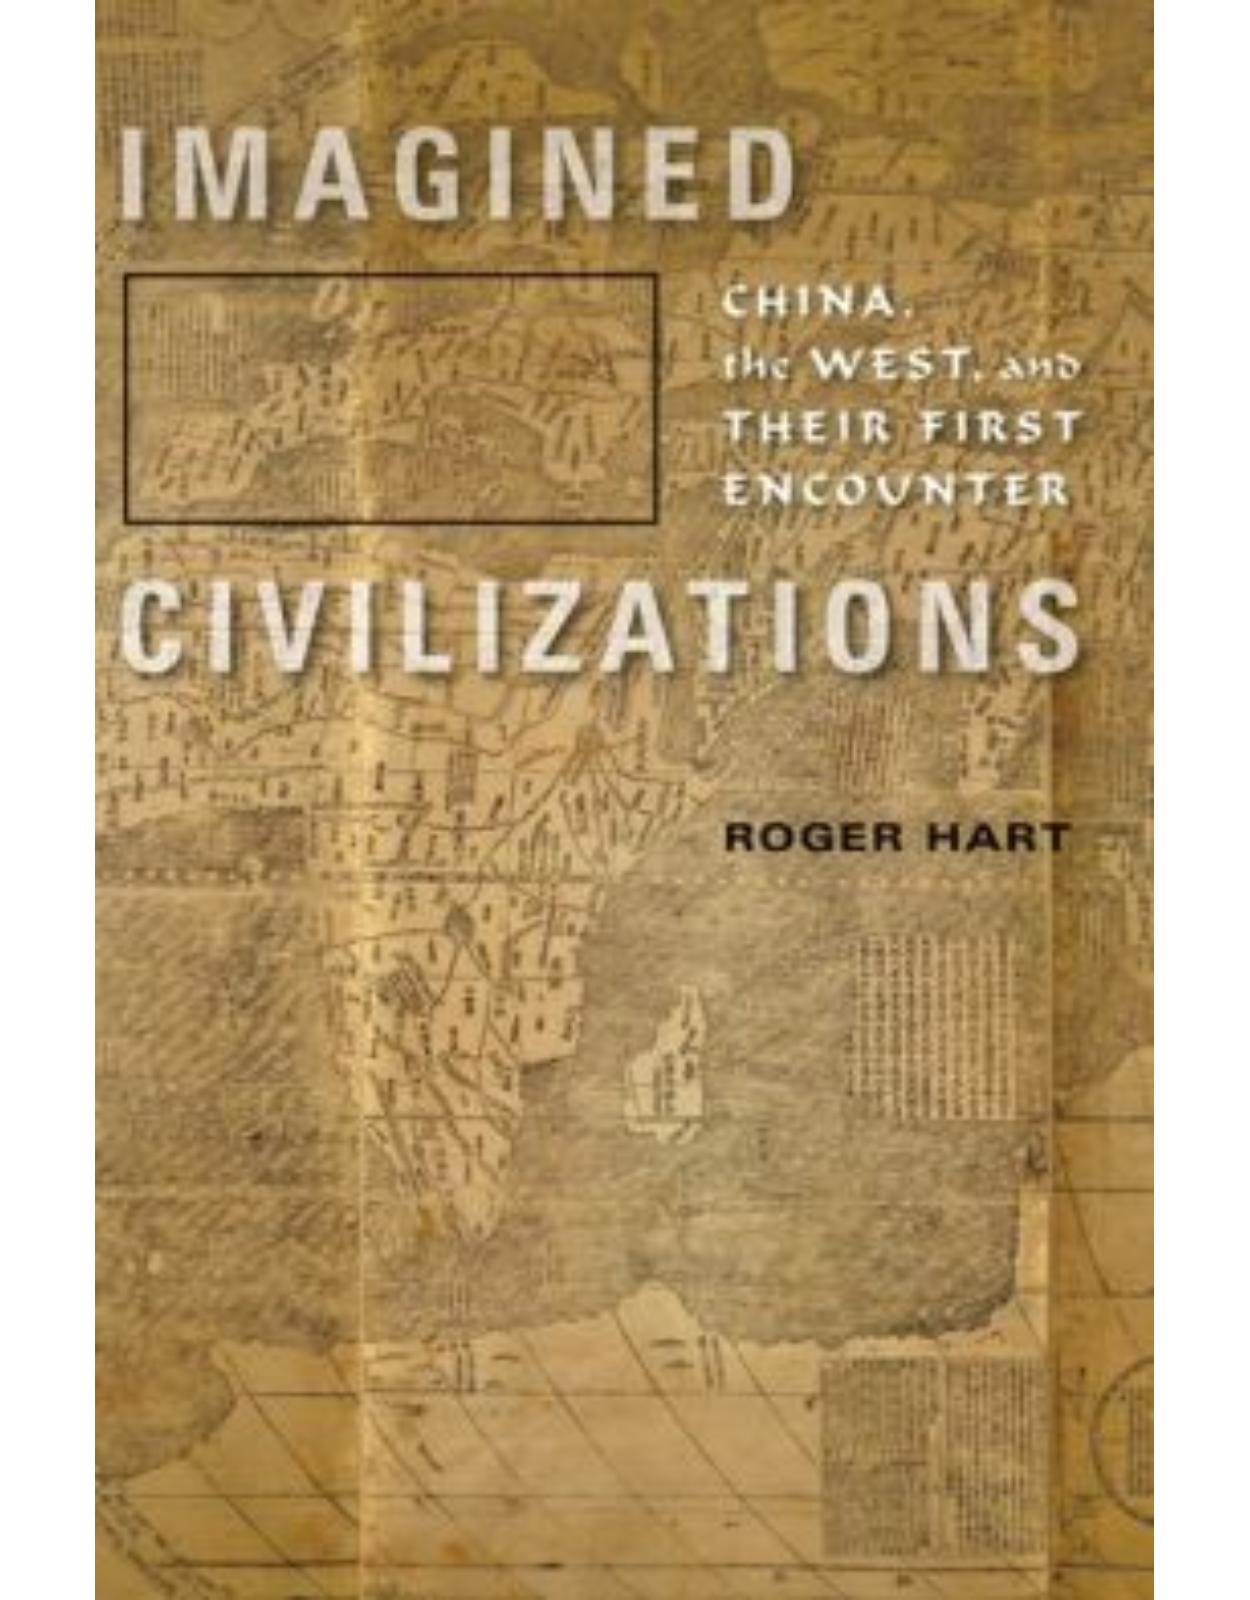 Imagined Civilizations. China, the West, and Their First Encounter